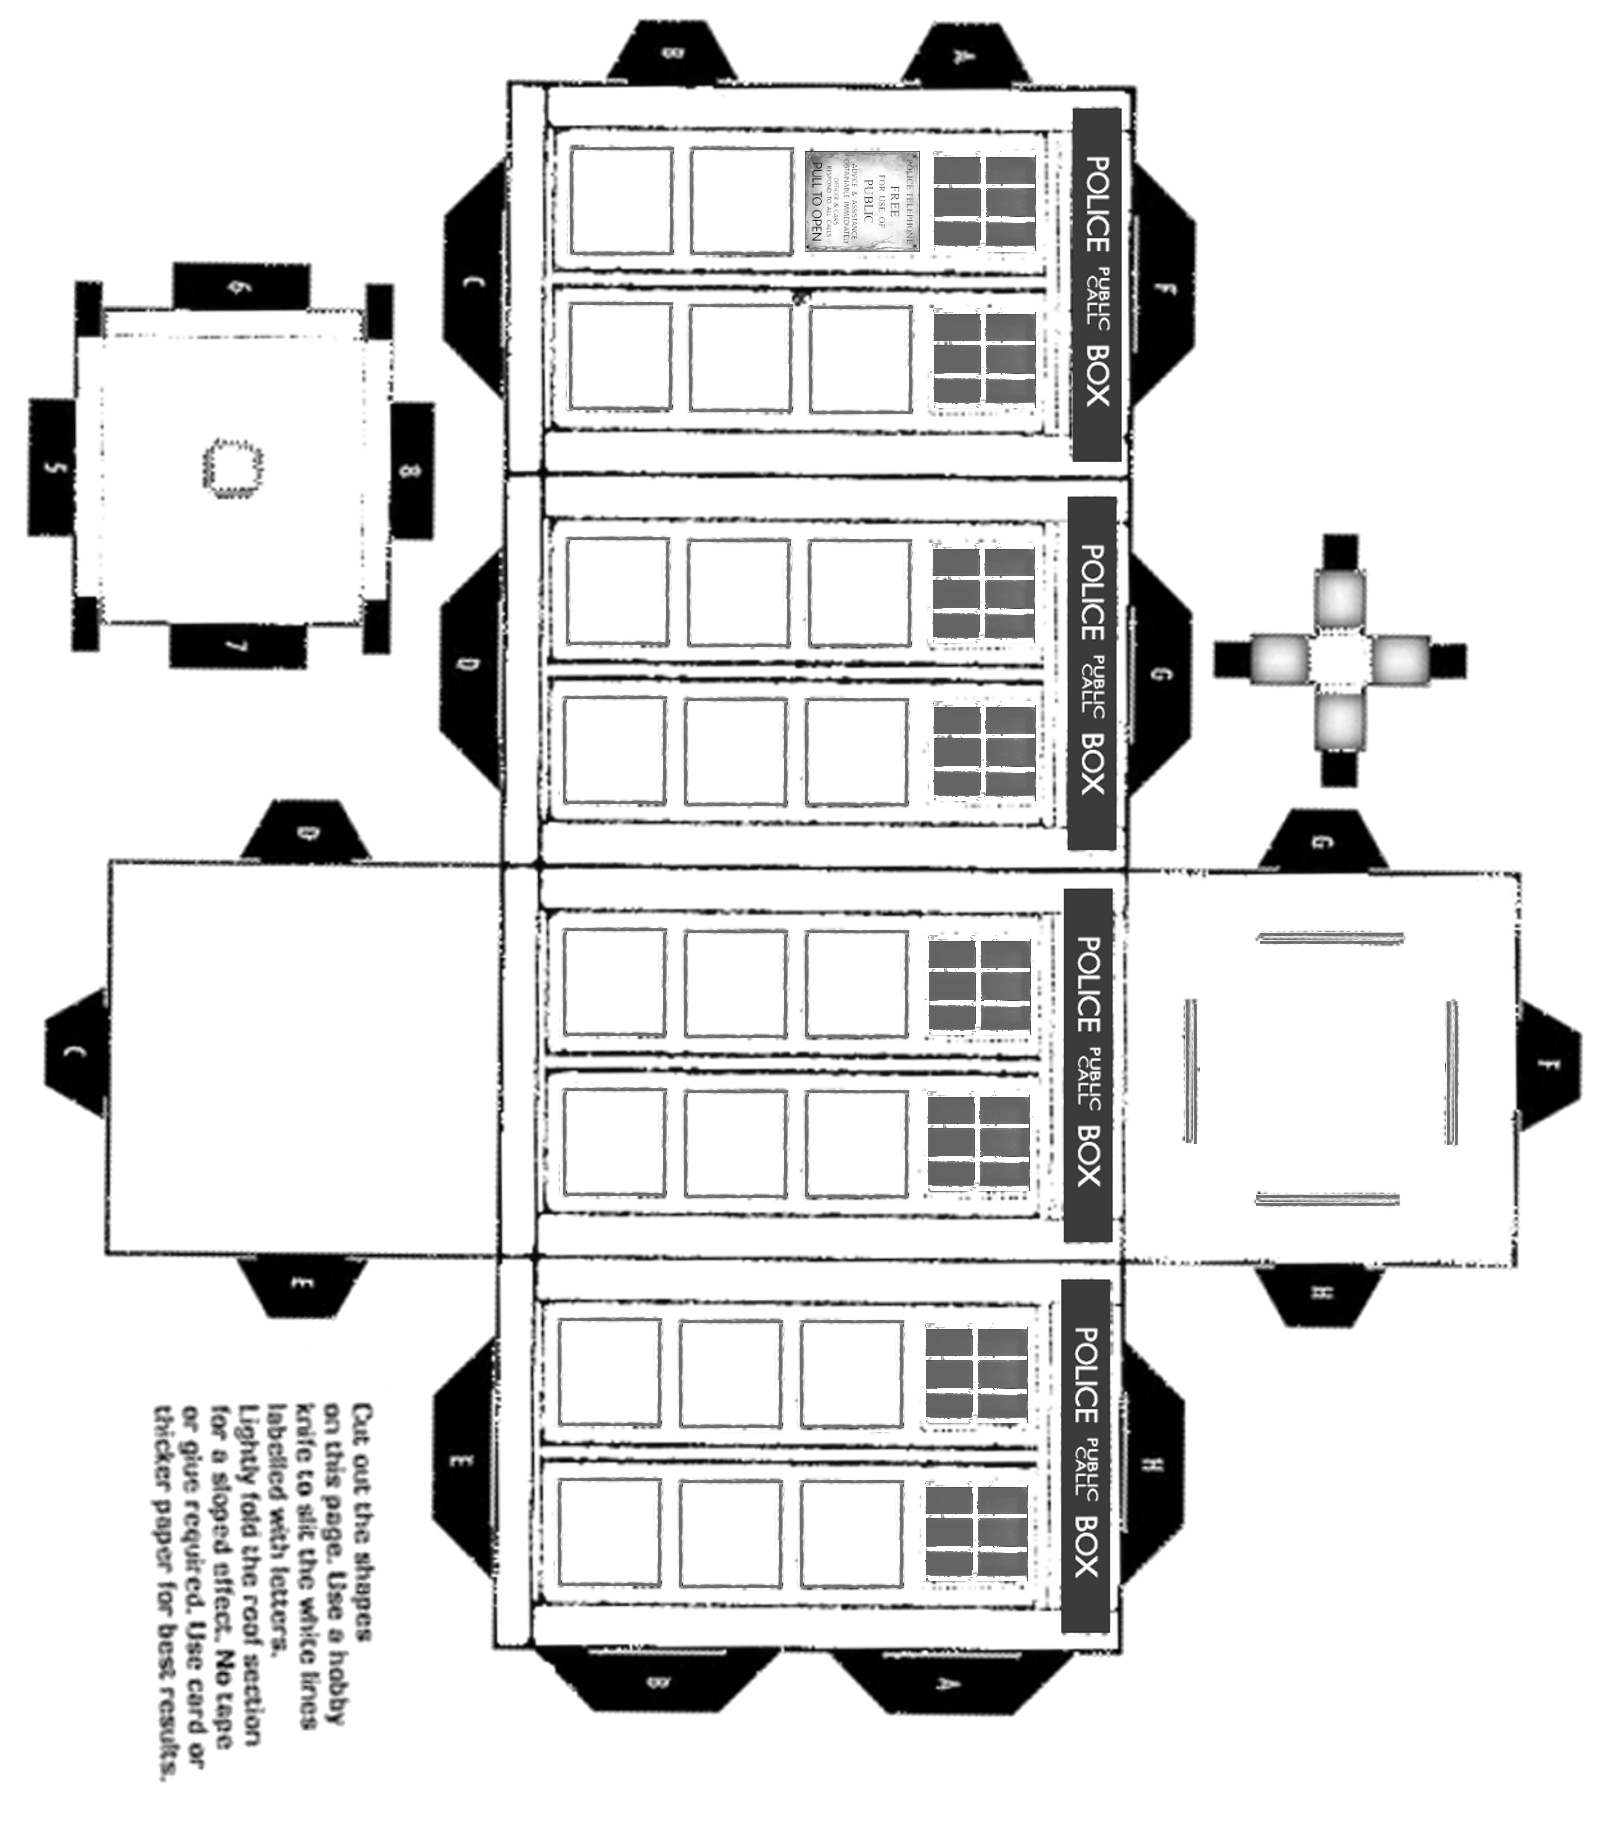 tardis colouring pages tardis colouring pages colouring tardis pages